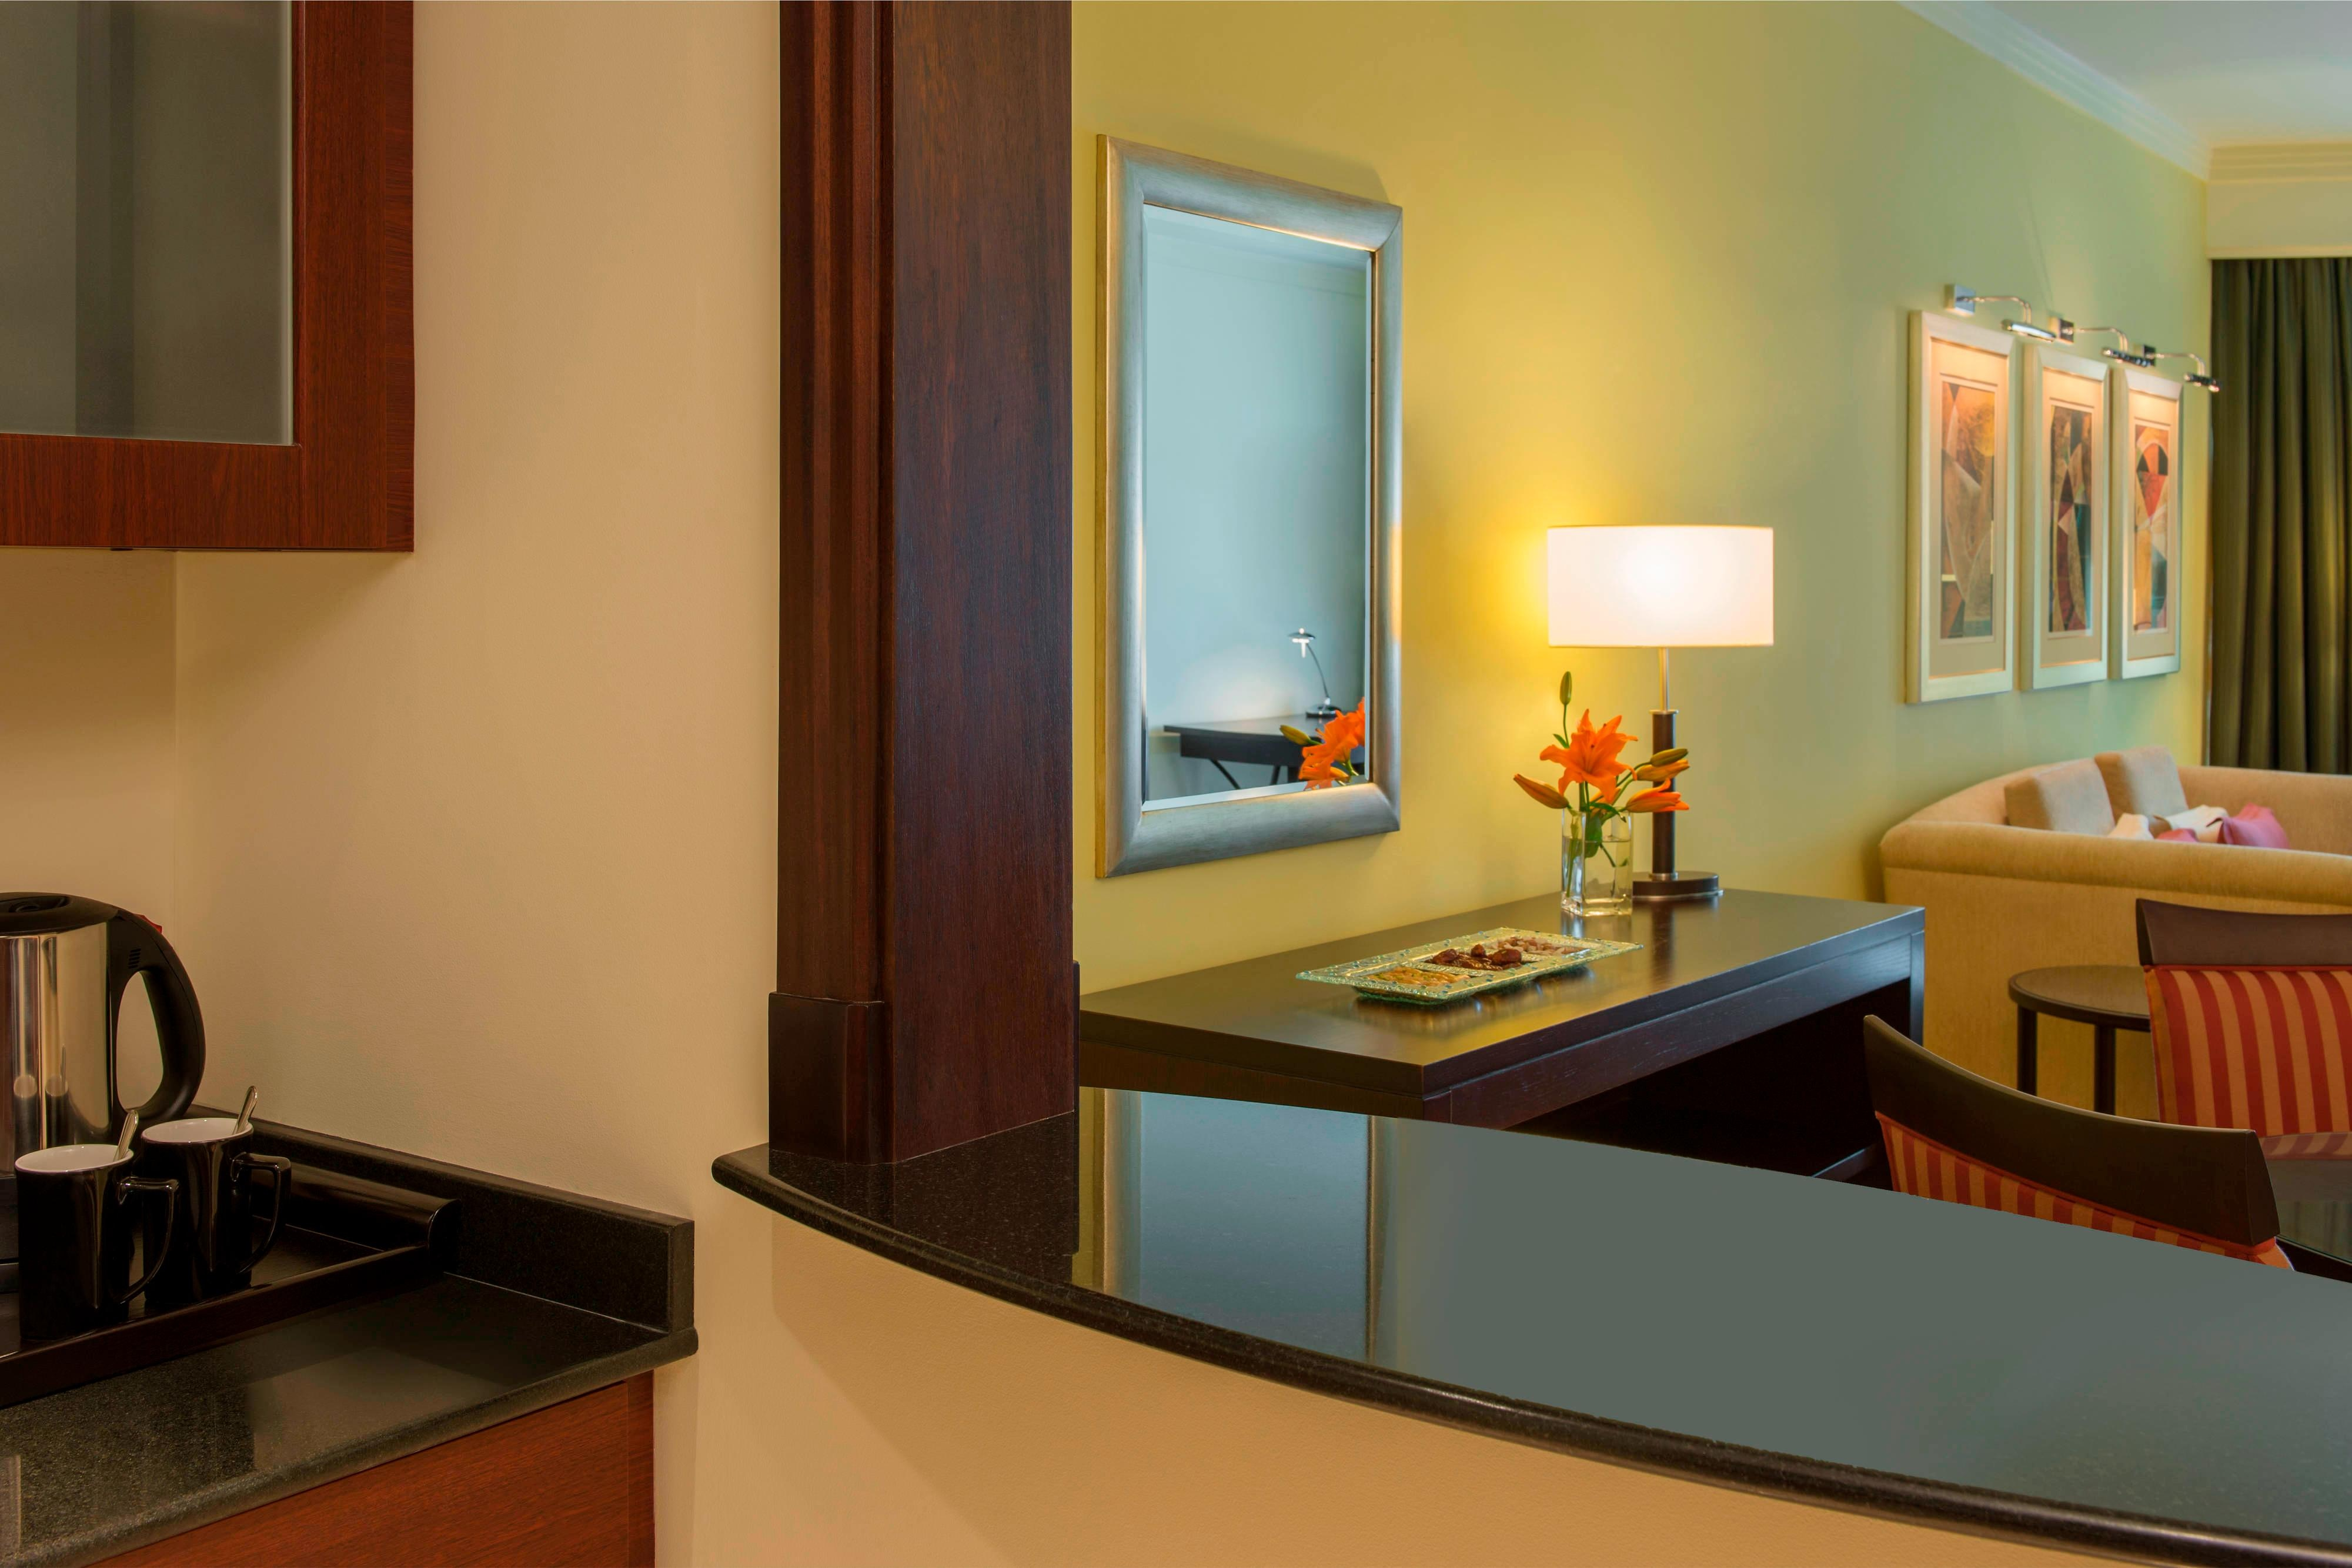 Royal Club Room - Kitchenette and Living Room